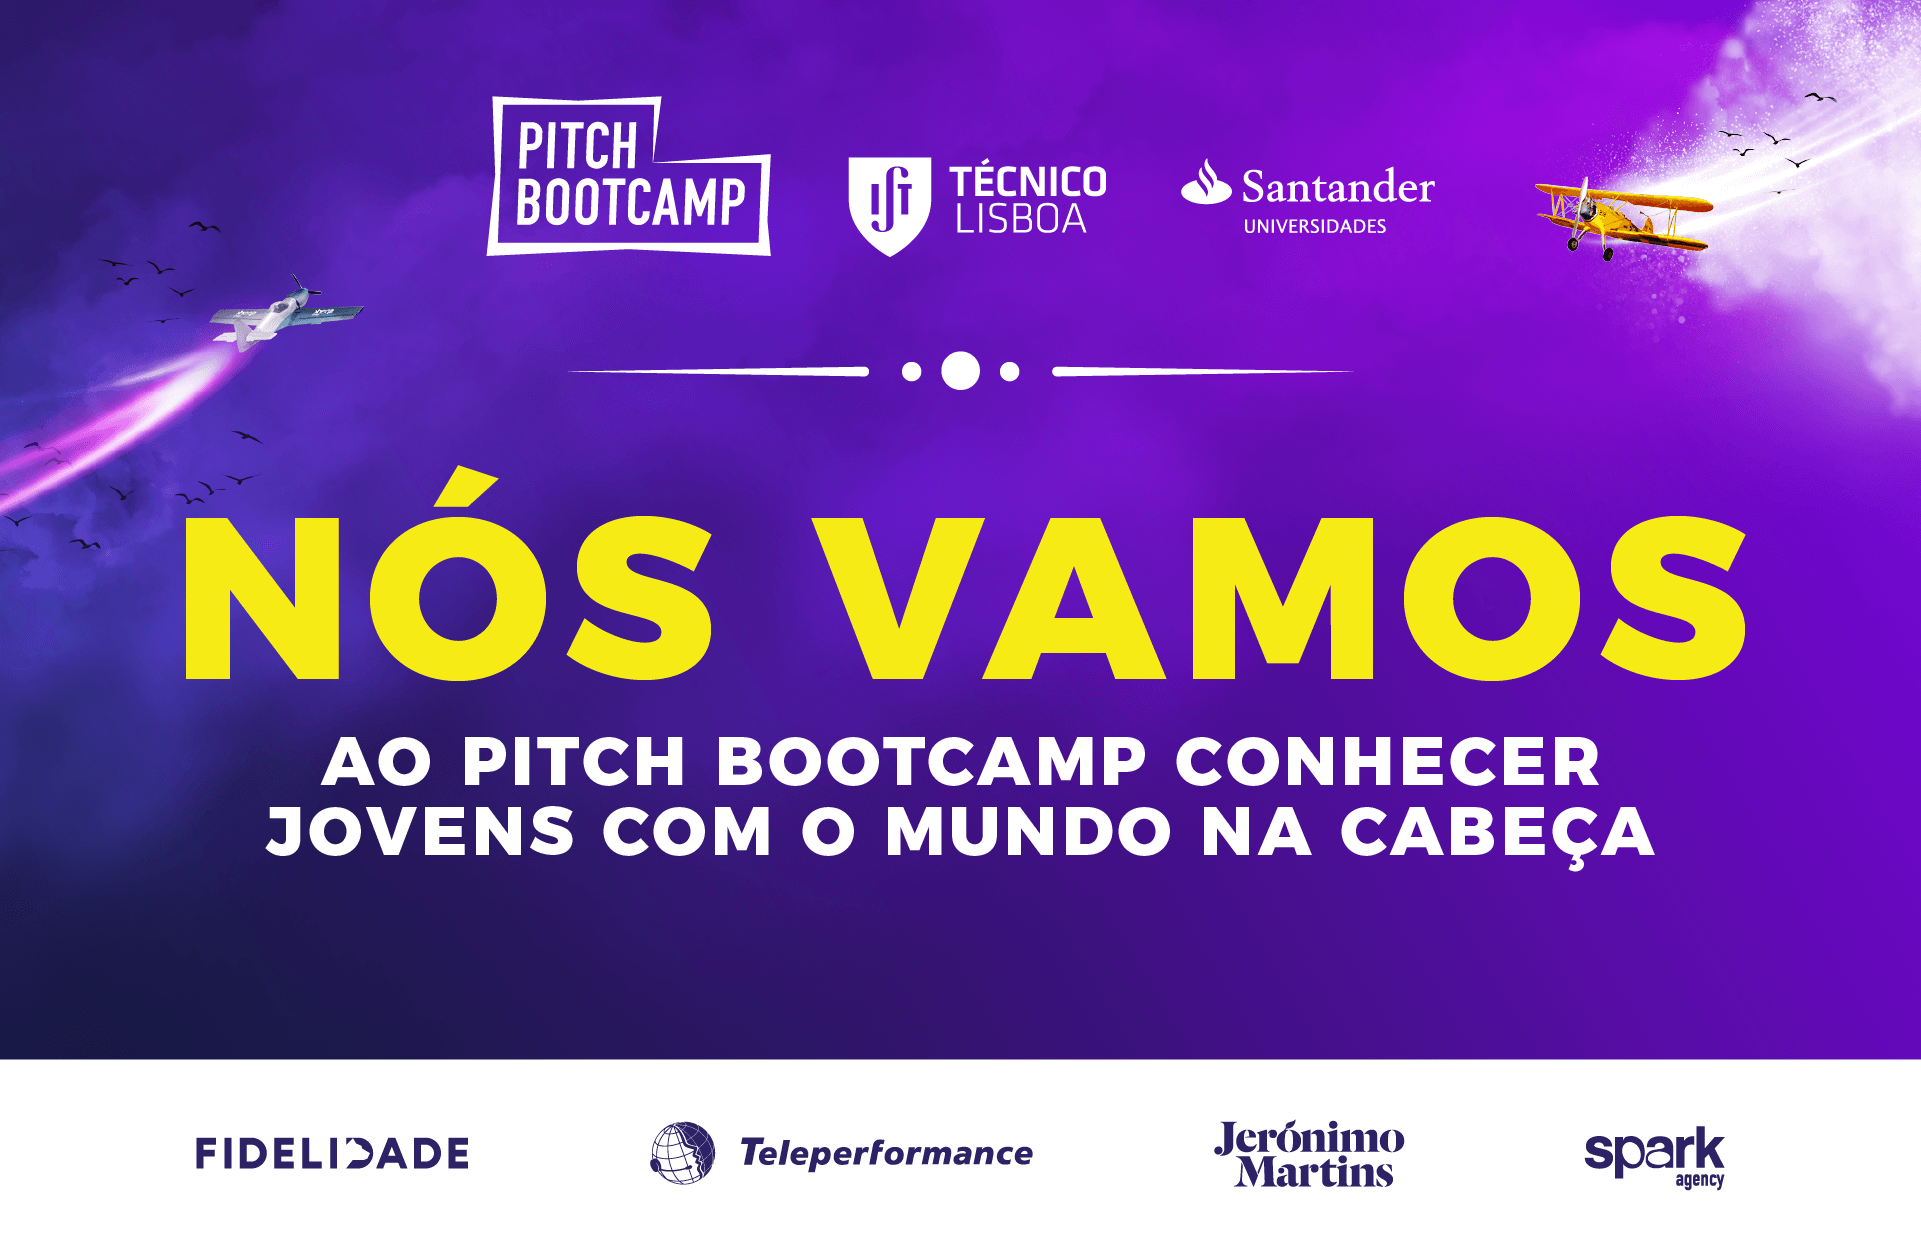 Pitch Bootcamp - IT People Innovation - IST - Instituto Superior Técnico